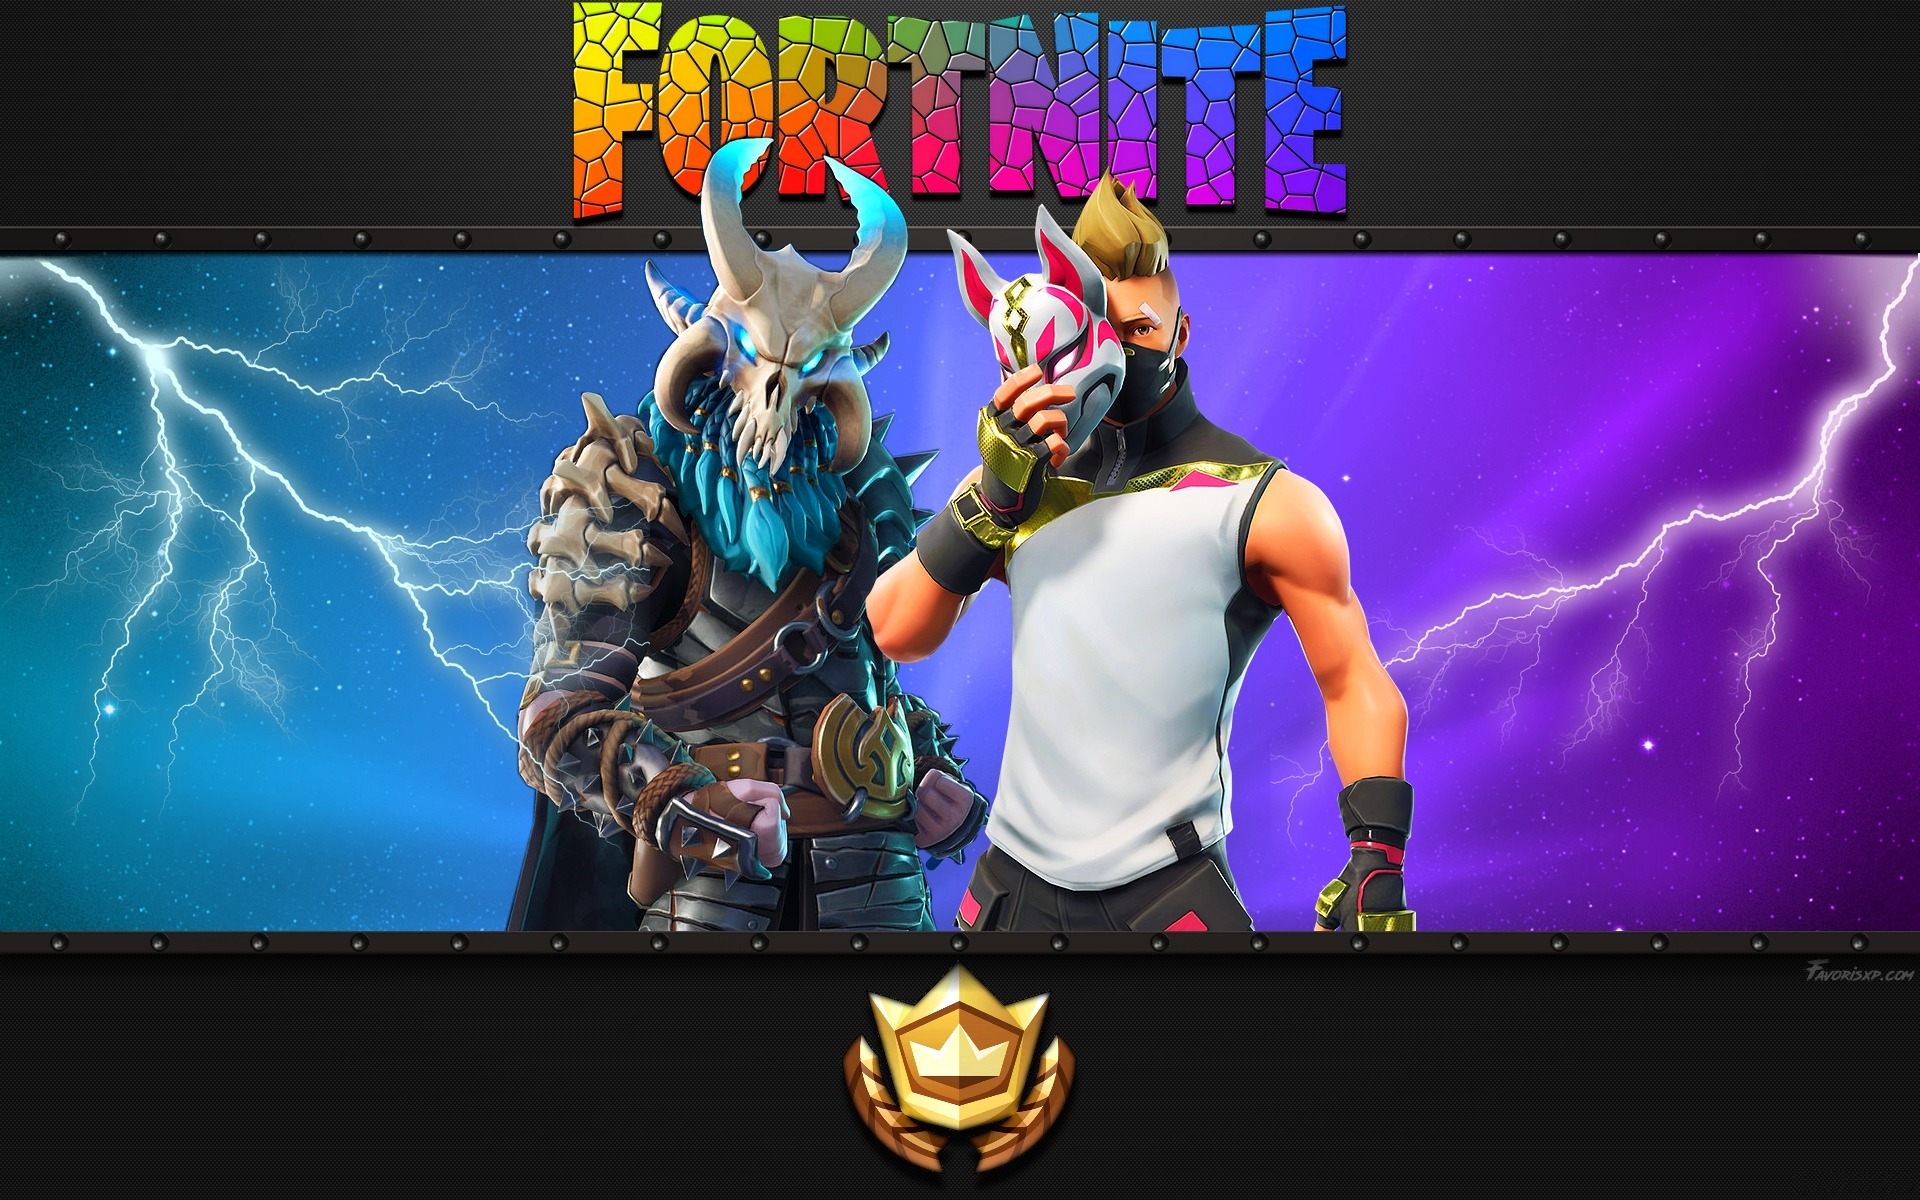 Wingtip Fortnite Wallpaper Art Fortnite Gamers 1920x1200